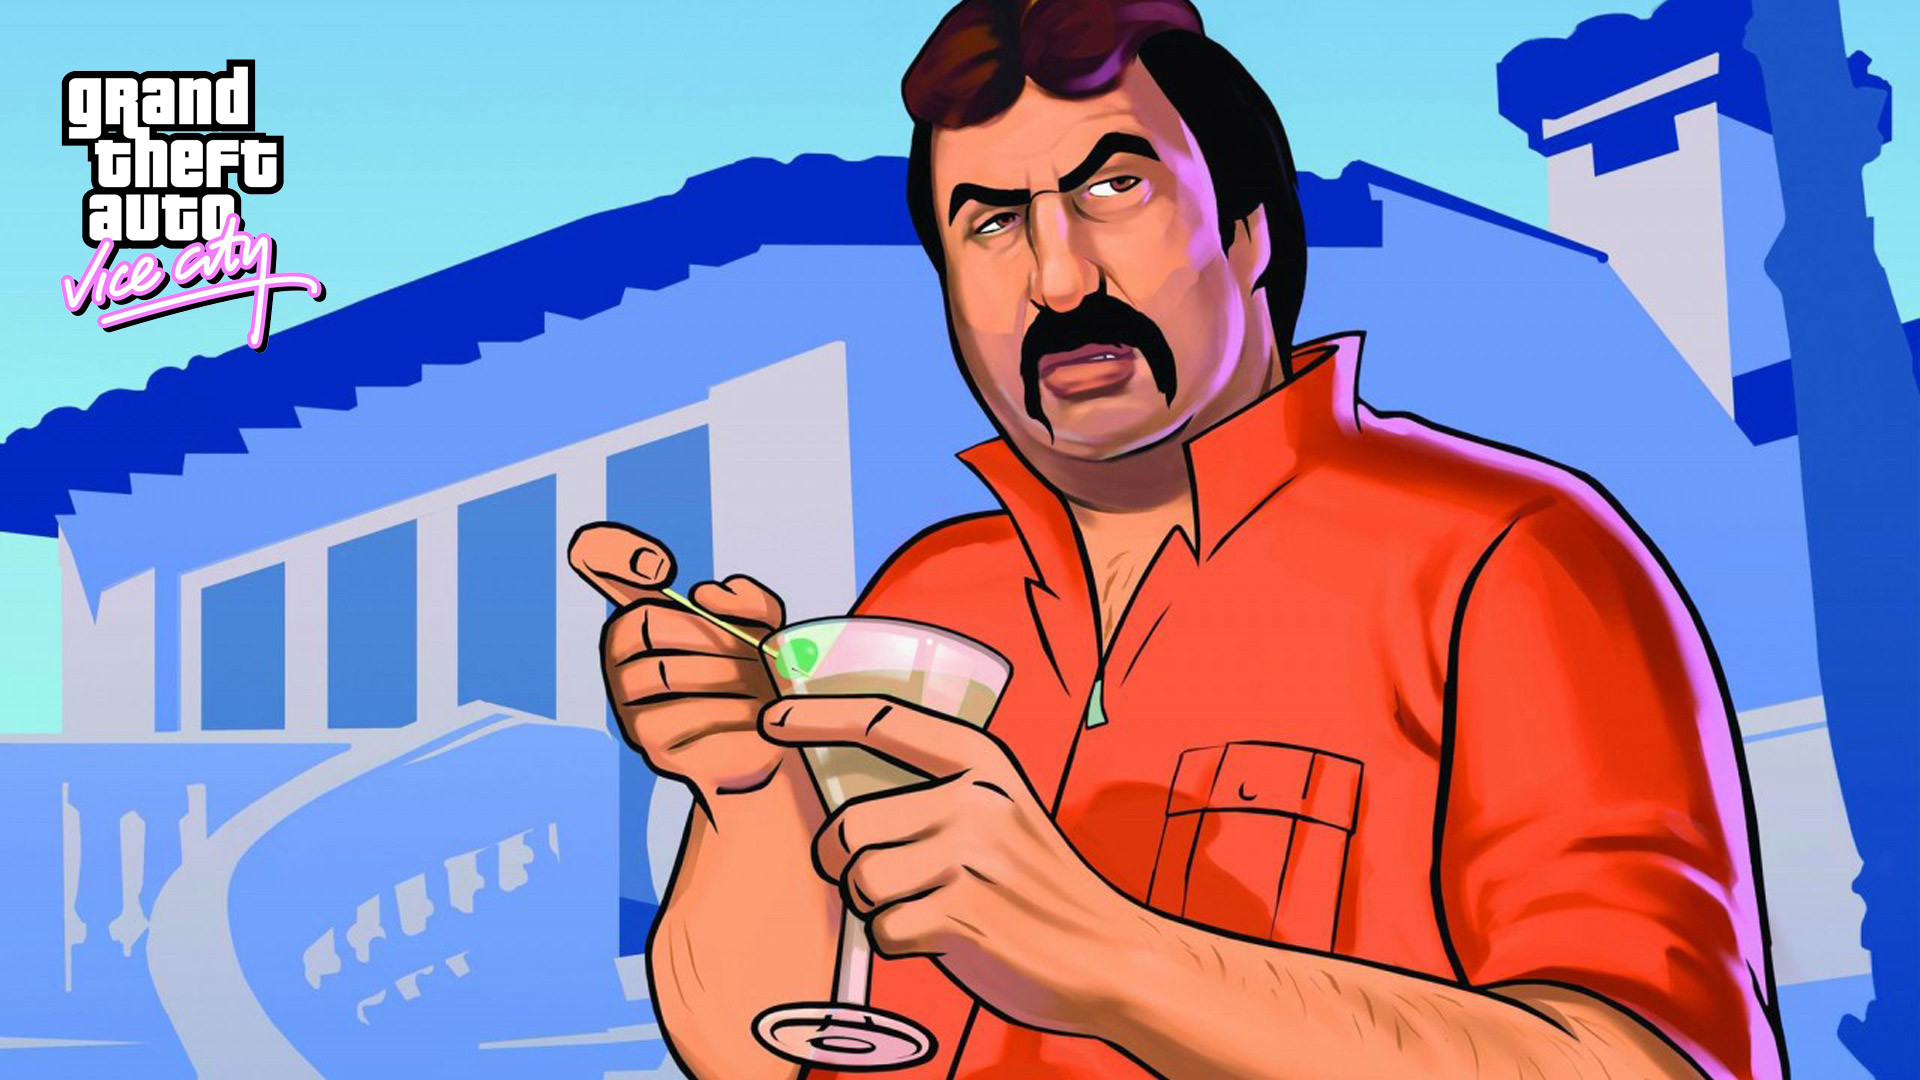 Vice City Wallpapers (73+ images)